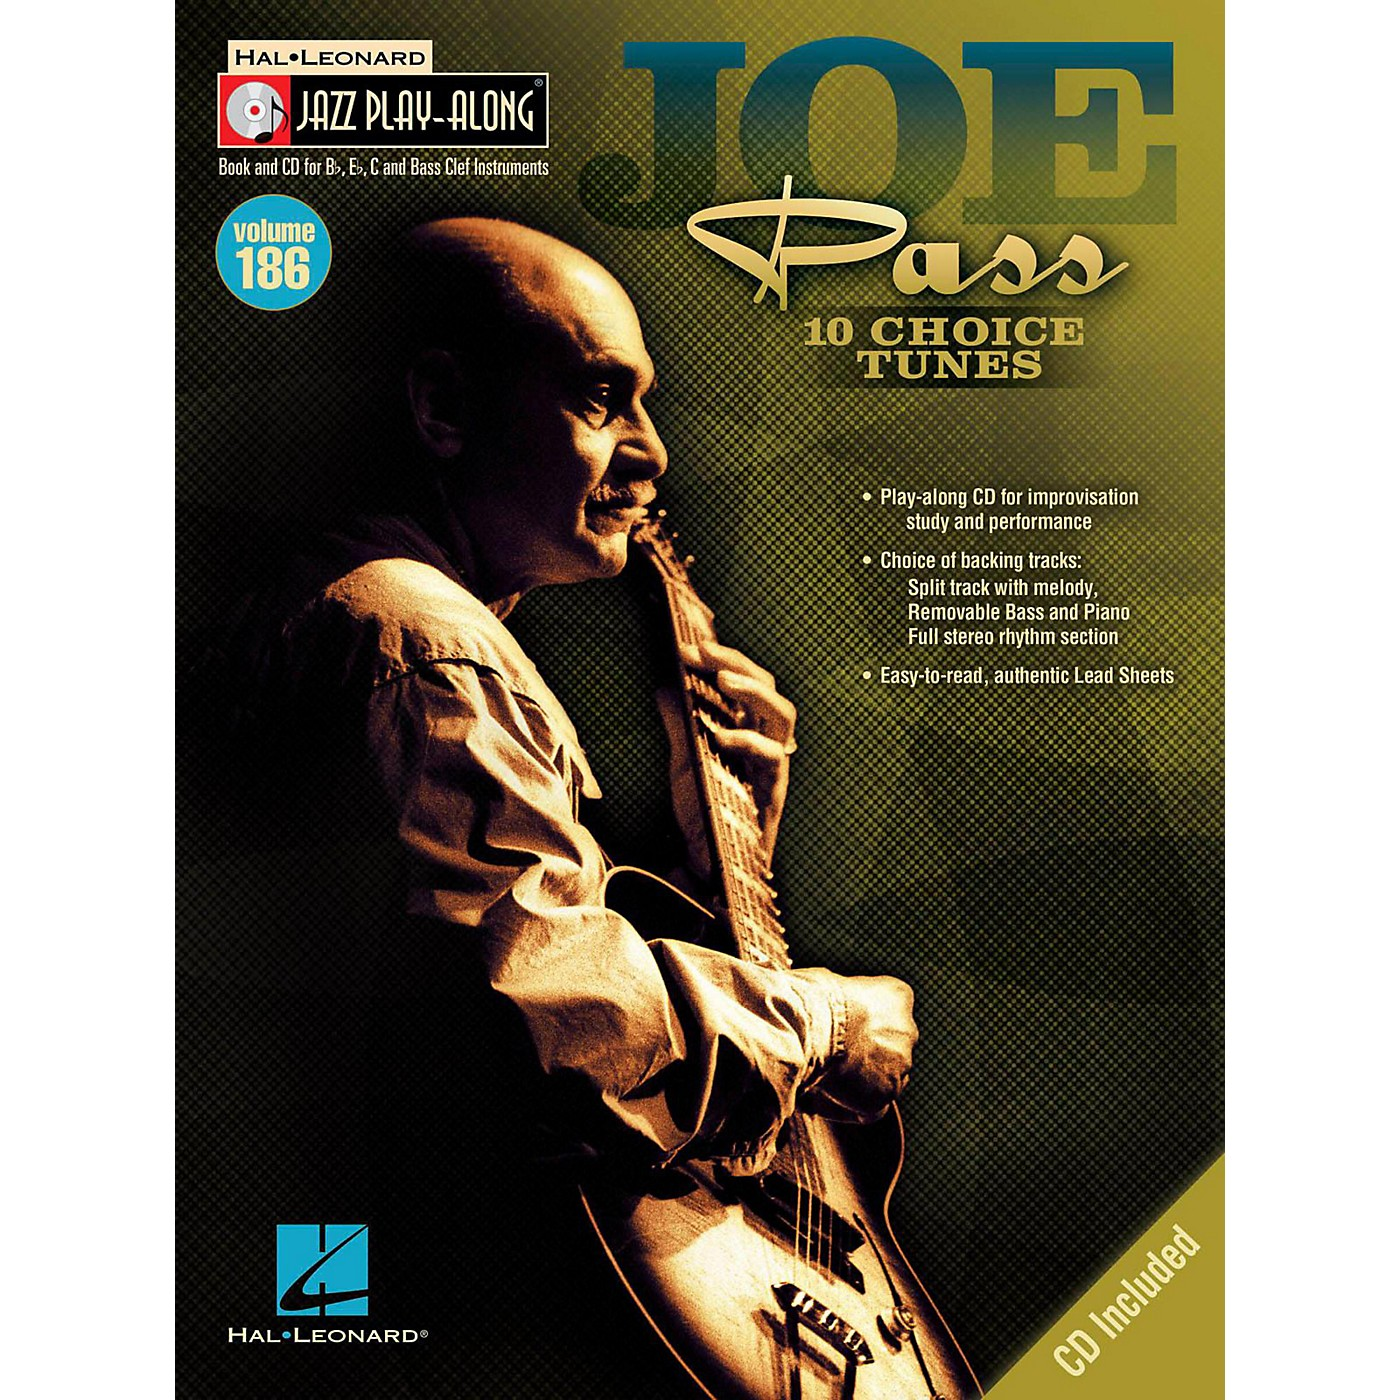 Hal Leonard Joe Pass - Jazz Play-Along Volume 186 Book/CD thumbnail